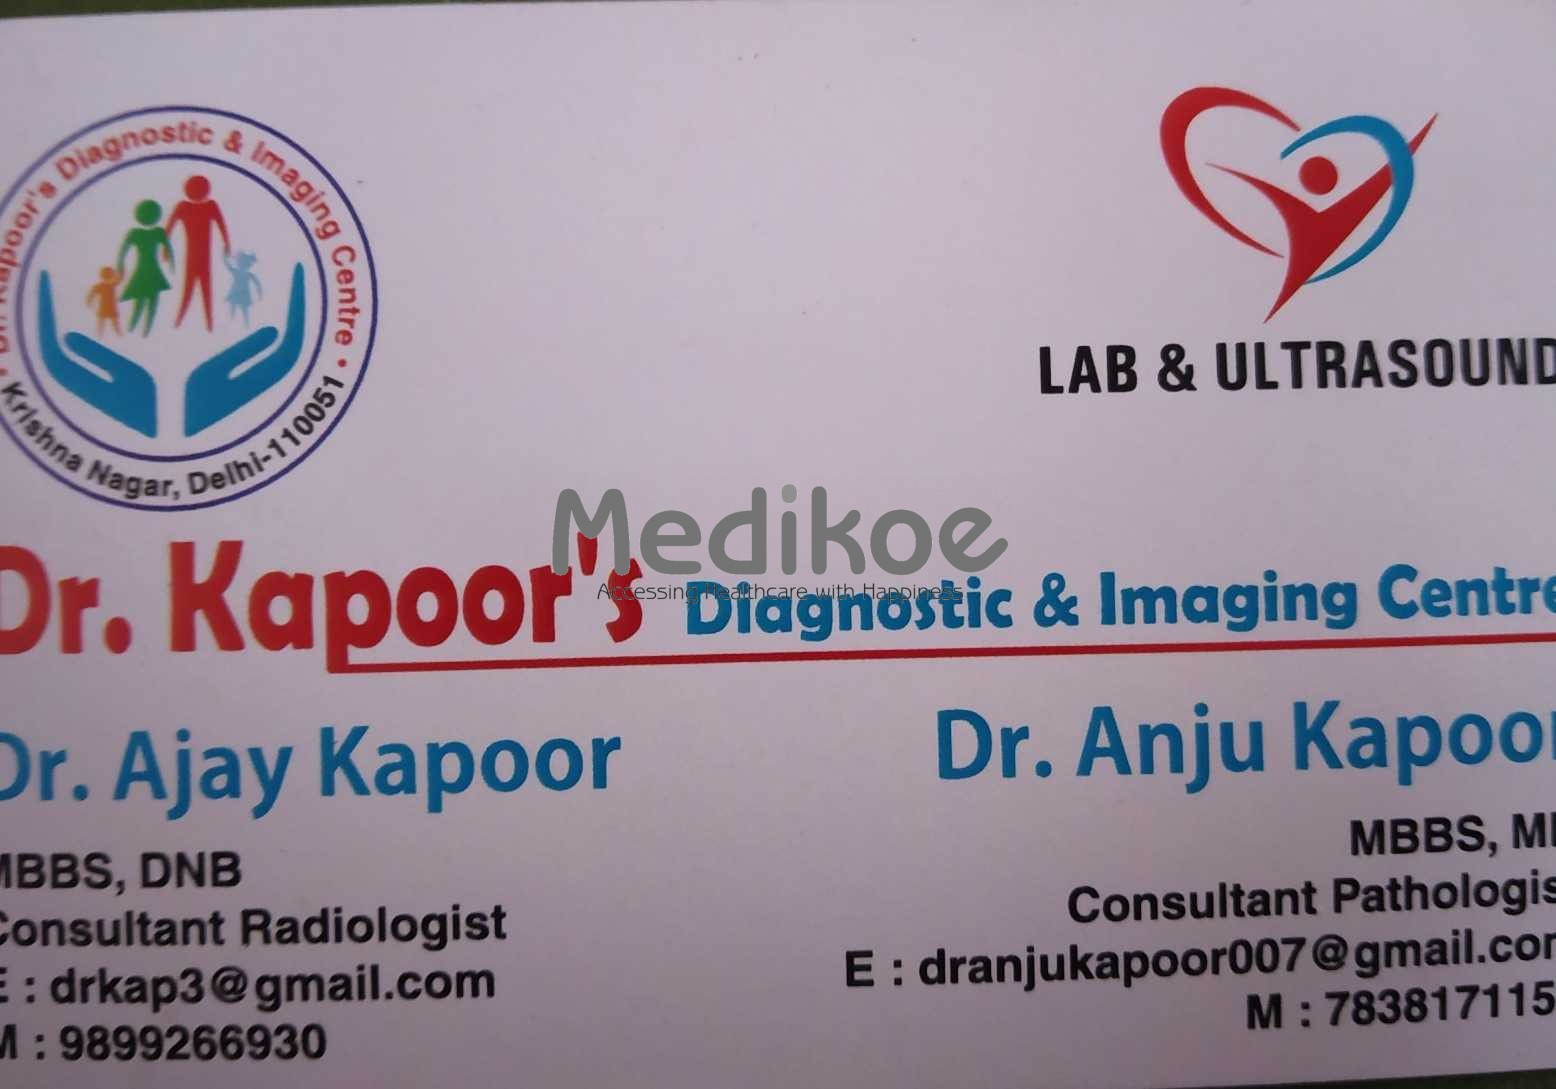 Dr. Ajay Kapoor